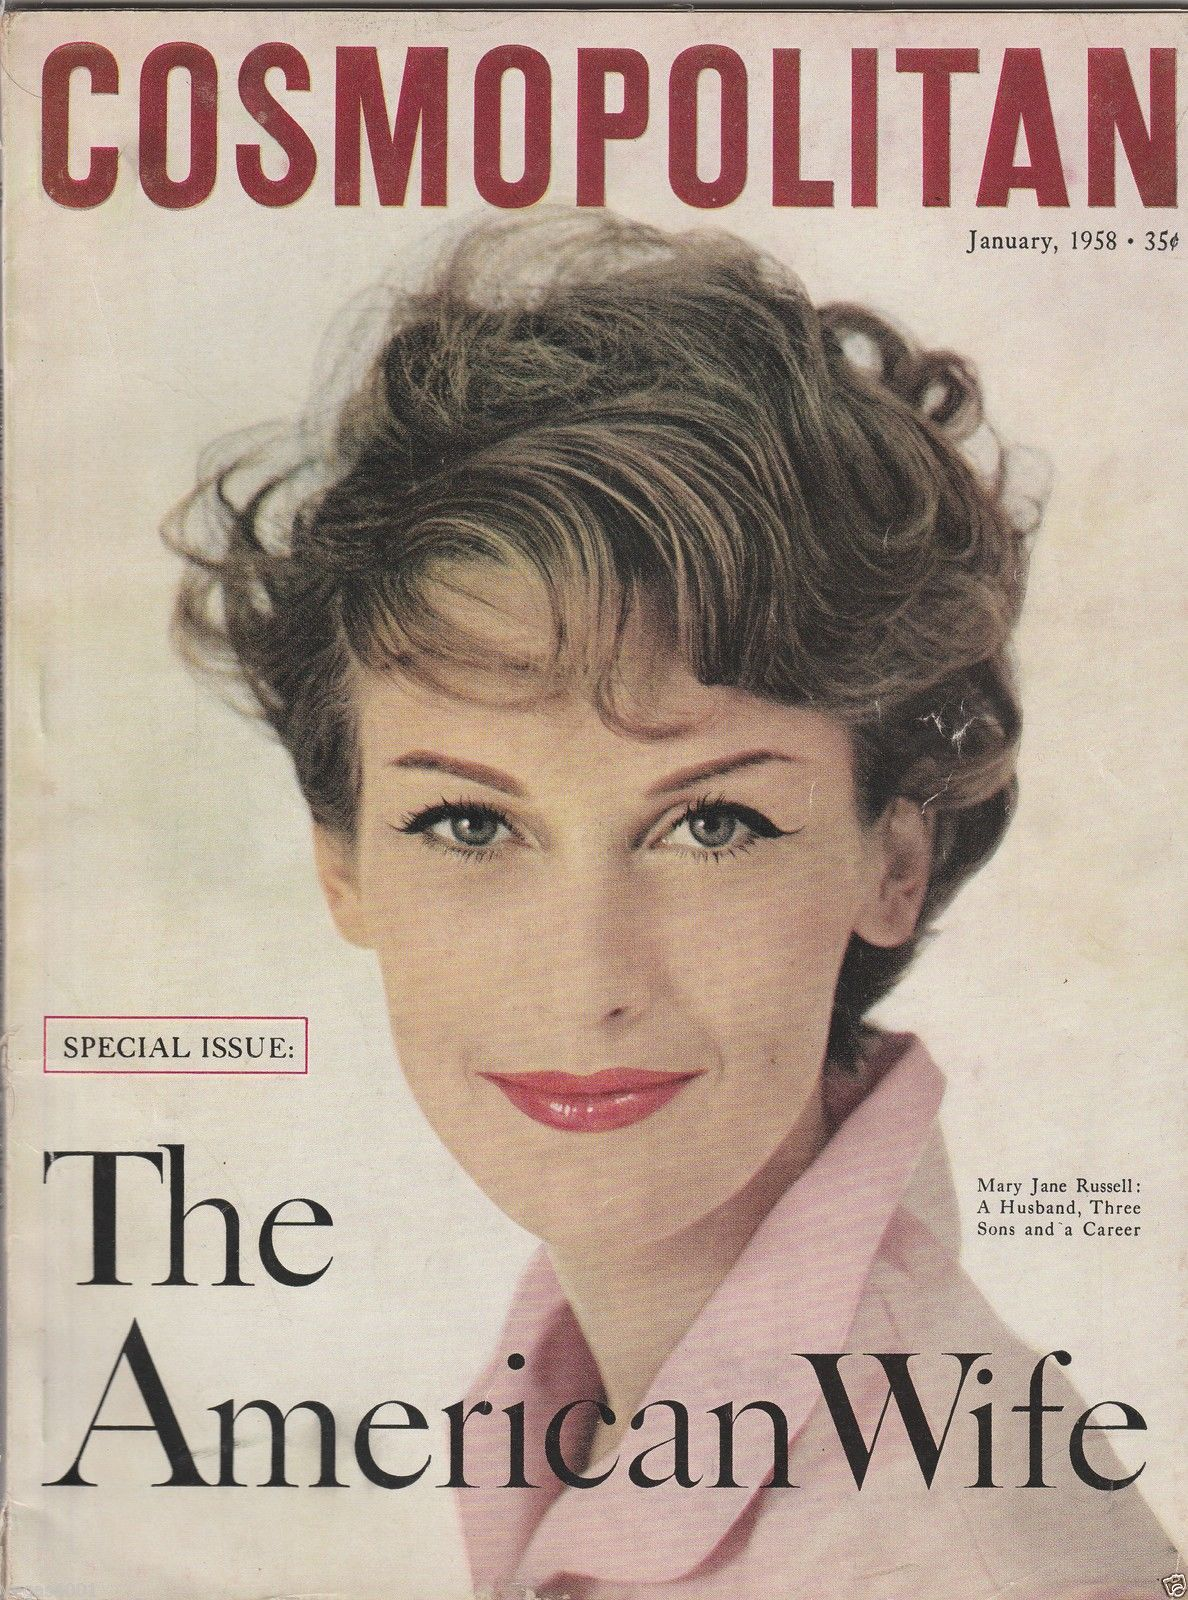 Cosmopolitan magazine, JANUARY 1958 Mary Jane Russell on cover